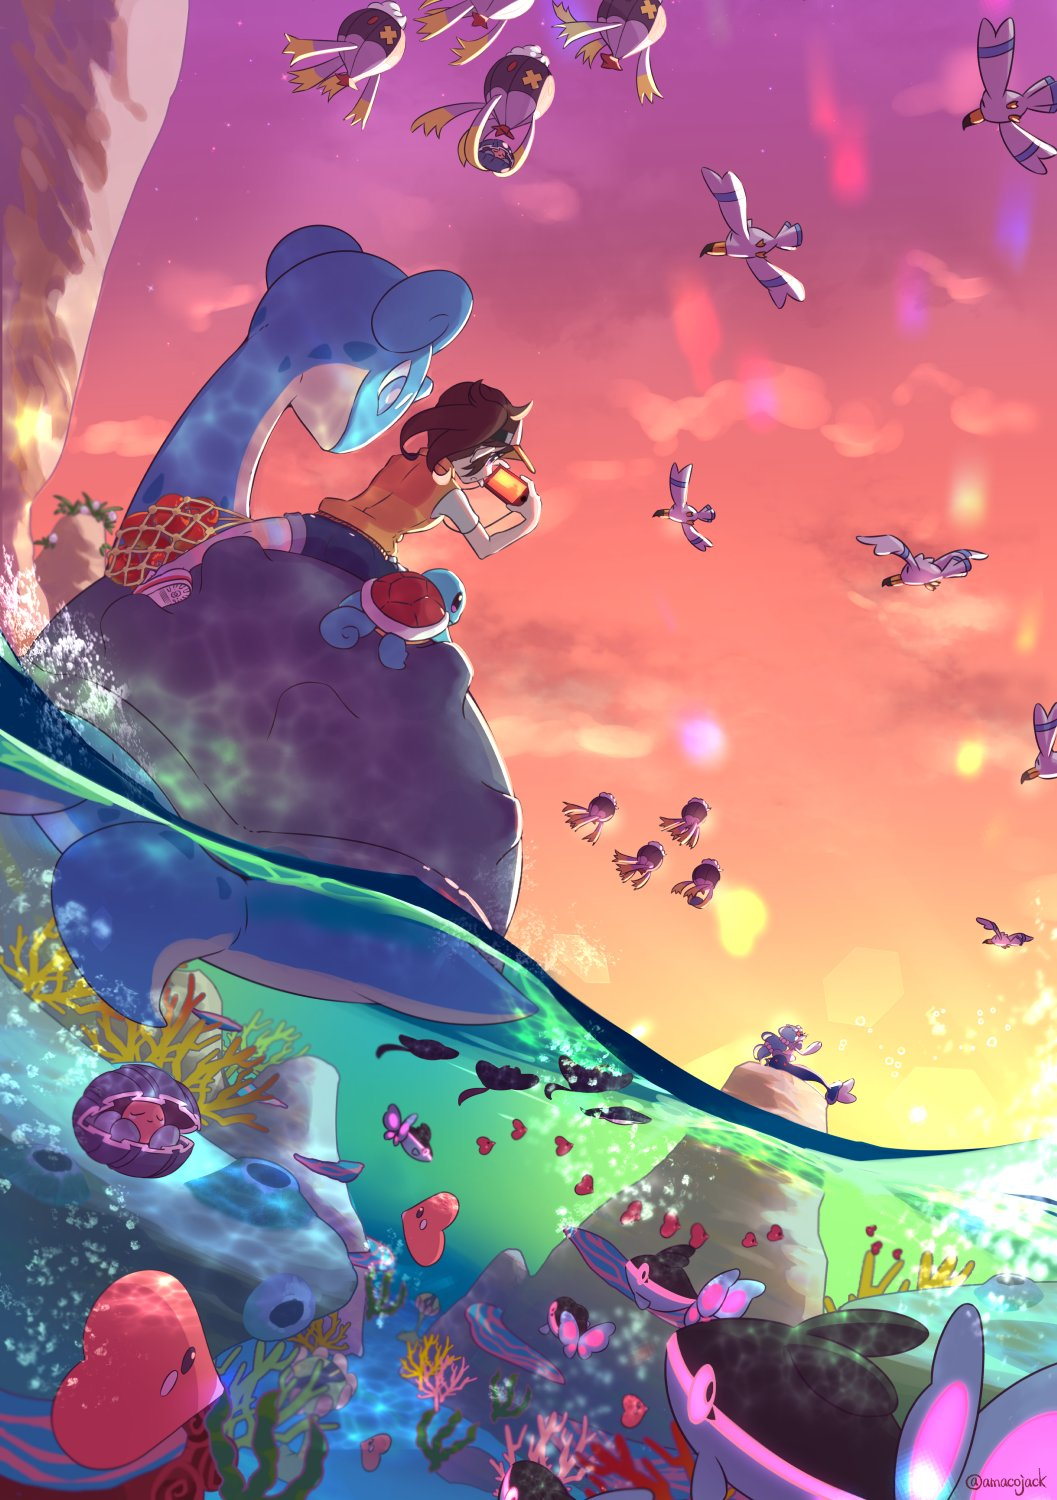 1girl air_bubble amaco_(amacoworklove) brown_hair bubble camera clamperl clouds commentary_request coral drifblim finneon gen_1_pokemon gen_2_pokemon gen_3_pokemon gen_4_pokemon gen_7_pokemon hands_up highres holding holding_camera lapras luvdisc mantine new_pokemon_snap outdoors partially_underwater_shot pokemon pokemon_(creature) primarina riding_pokemon river_(pokemon) shoes short_sleeves shorts sky squirtle taking_picture twilight visor_cap wingull